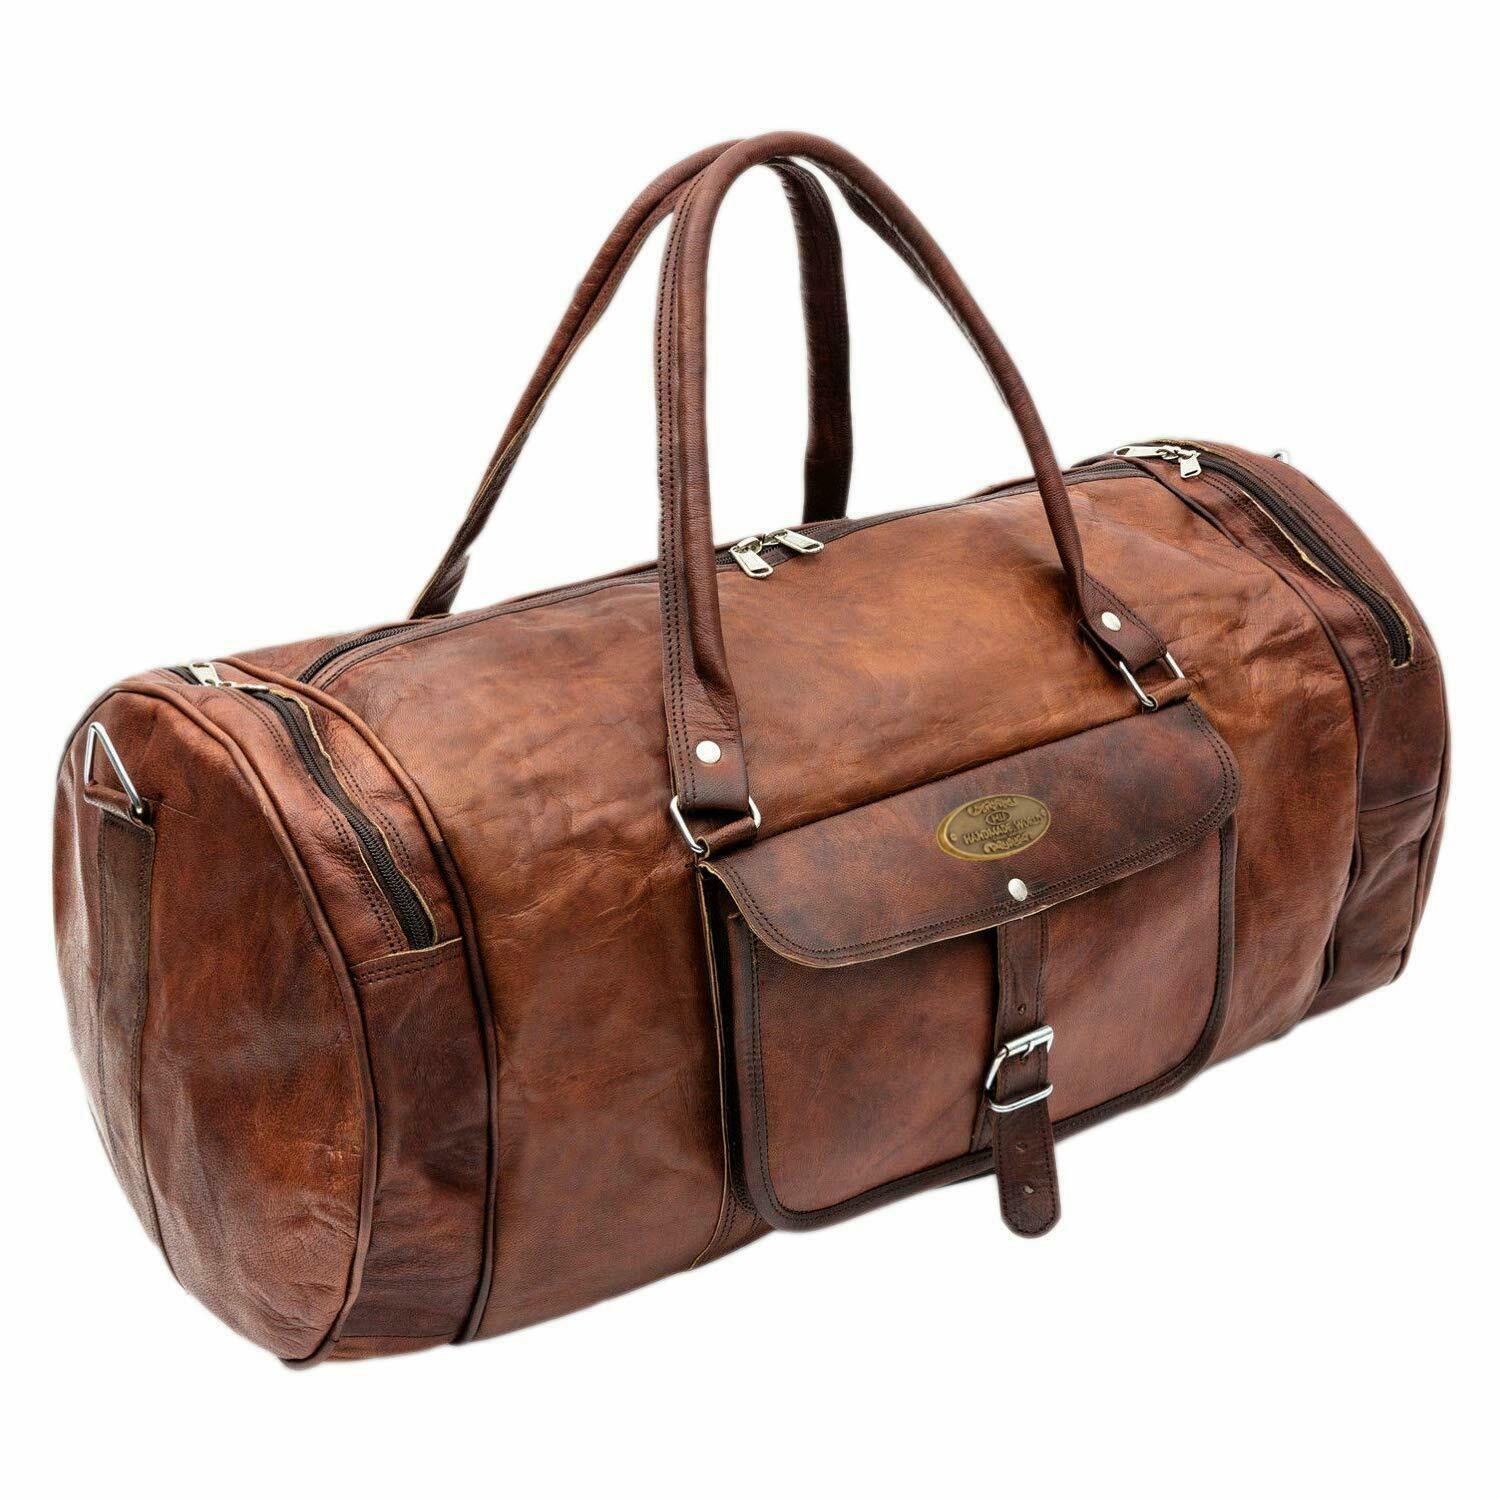 948dd2c8aecb Details about Real Leather Duffel Gym Tote Bag Travel bag Weekend Overnight  Luggage Handbag